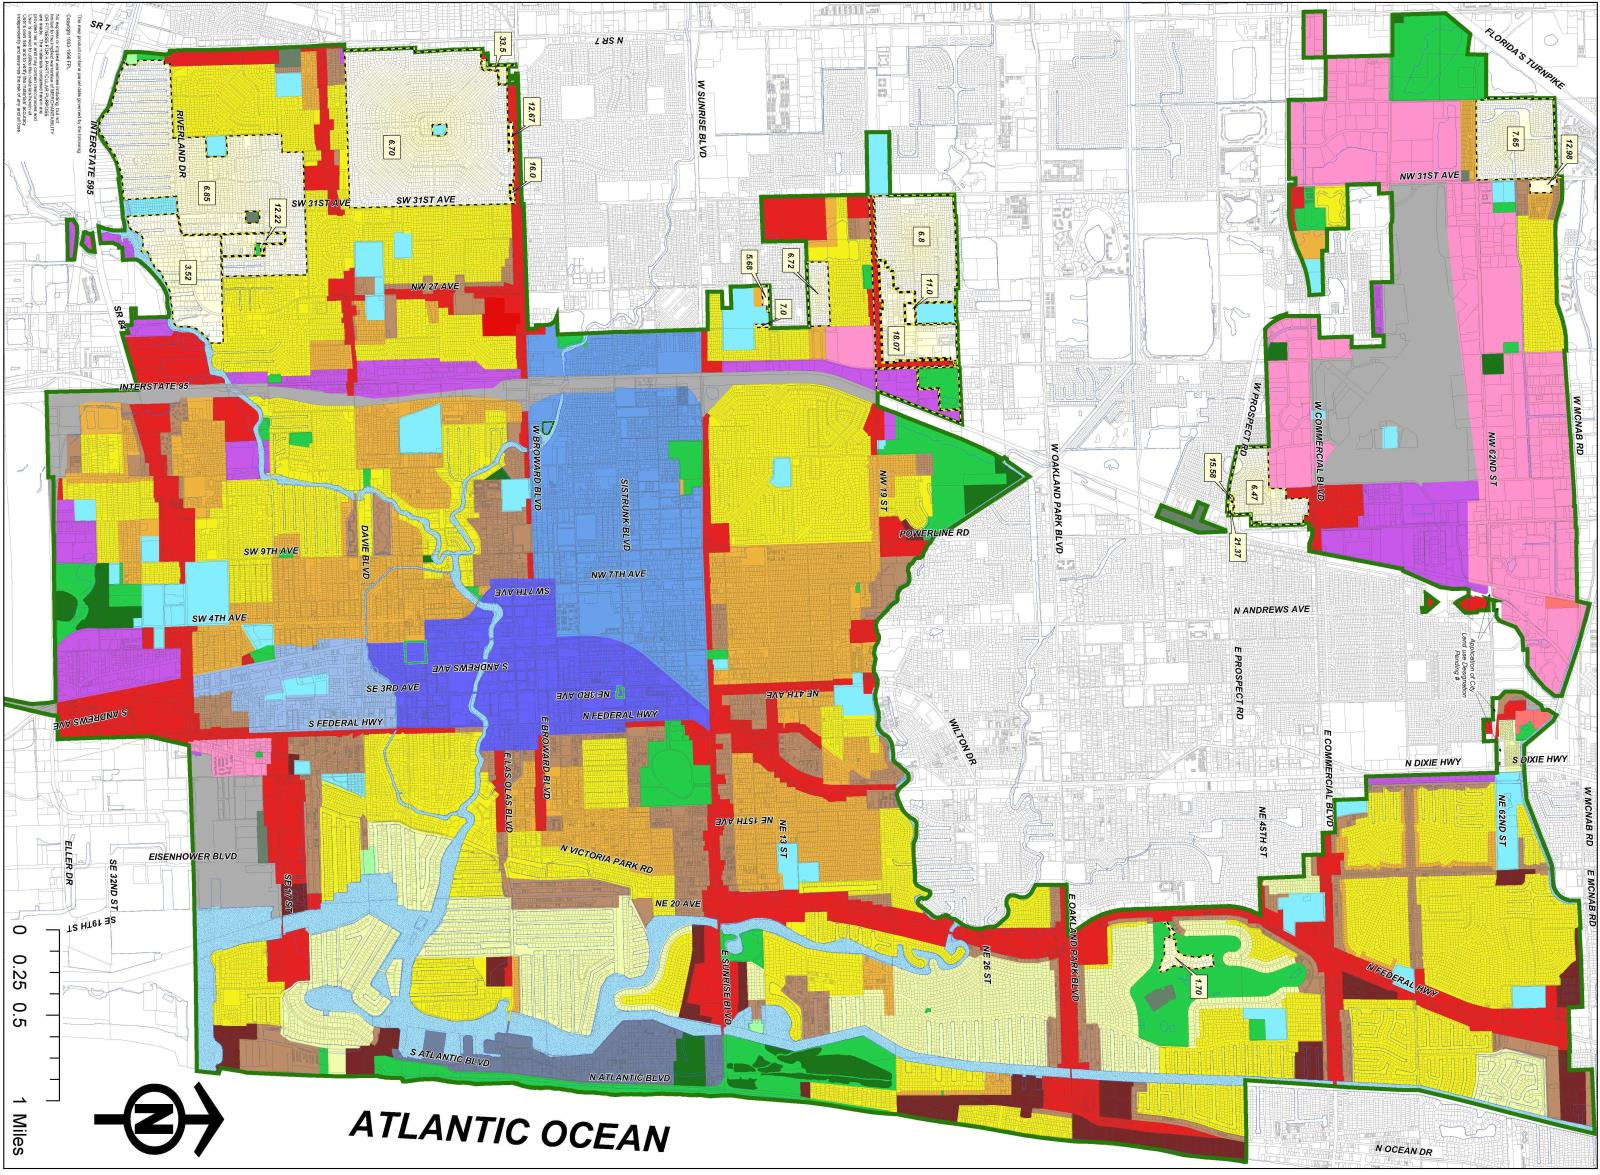 Future Land Use (24x36)Fort Lauderdale